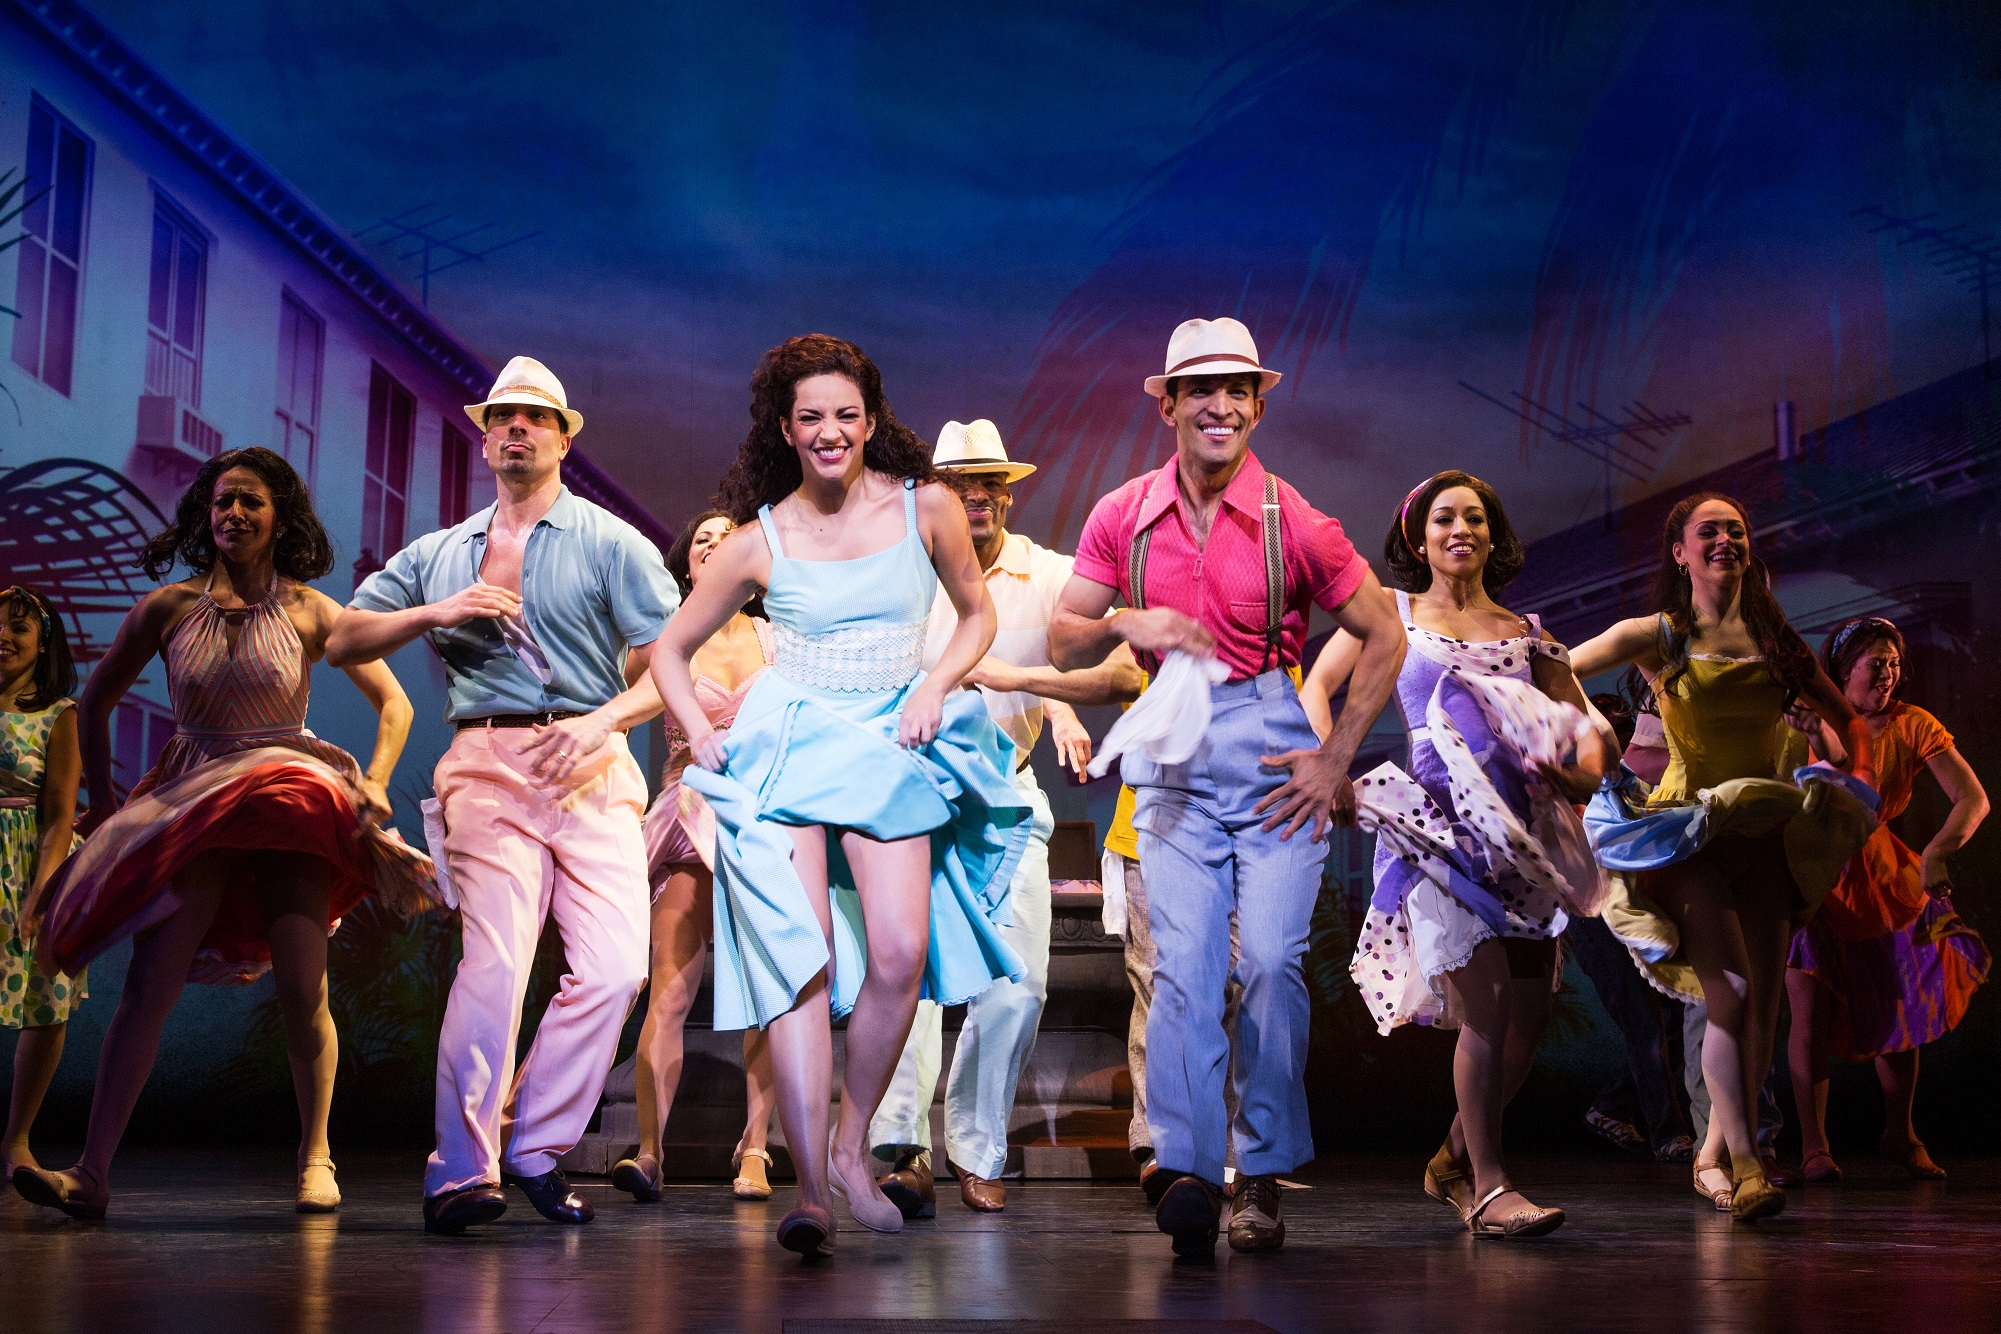 'On Your Feet,' shown here in its Broadway production, will launch its national tour in Shea's Performing Arts Center on Sept. 23.